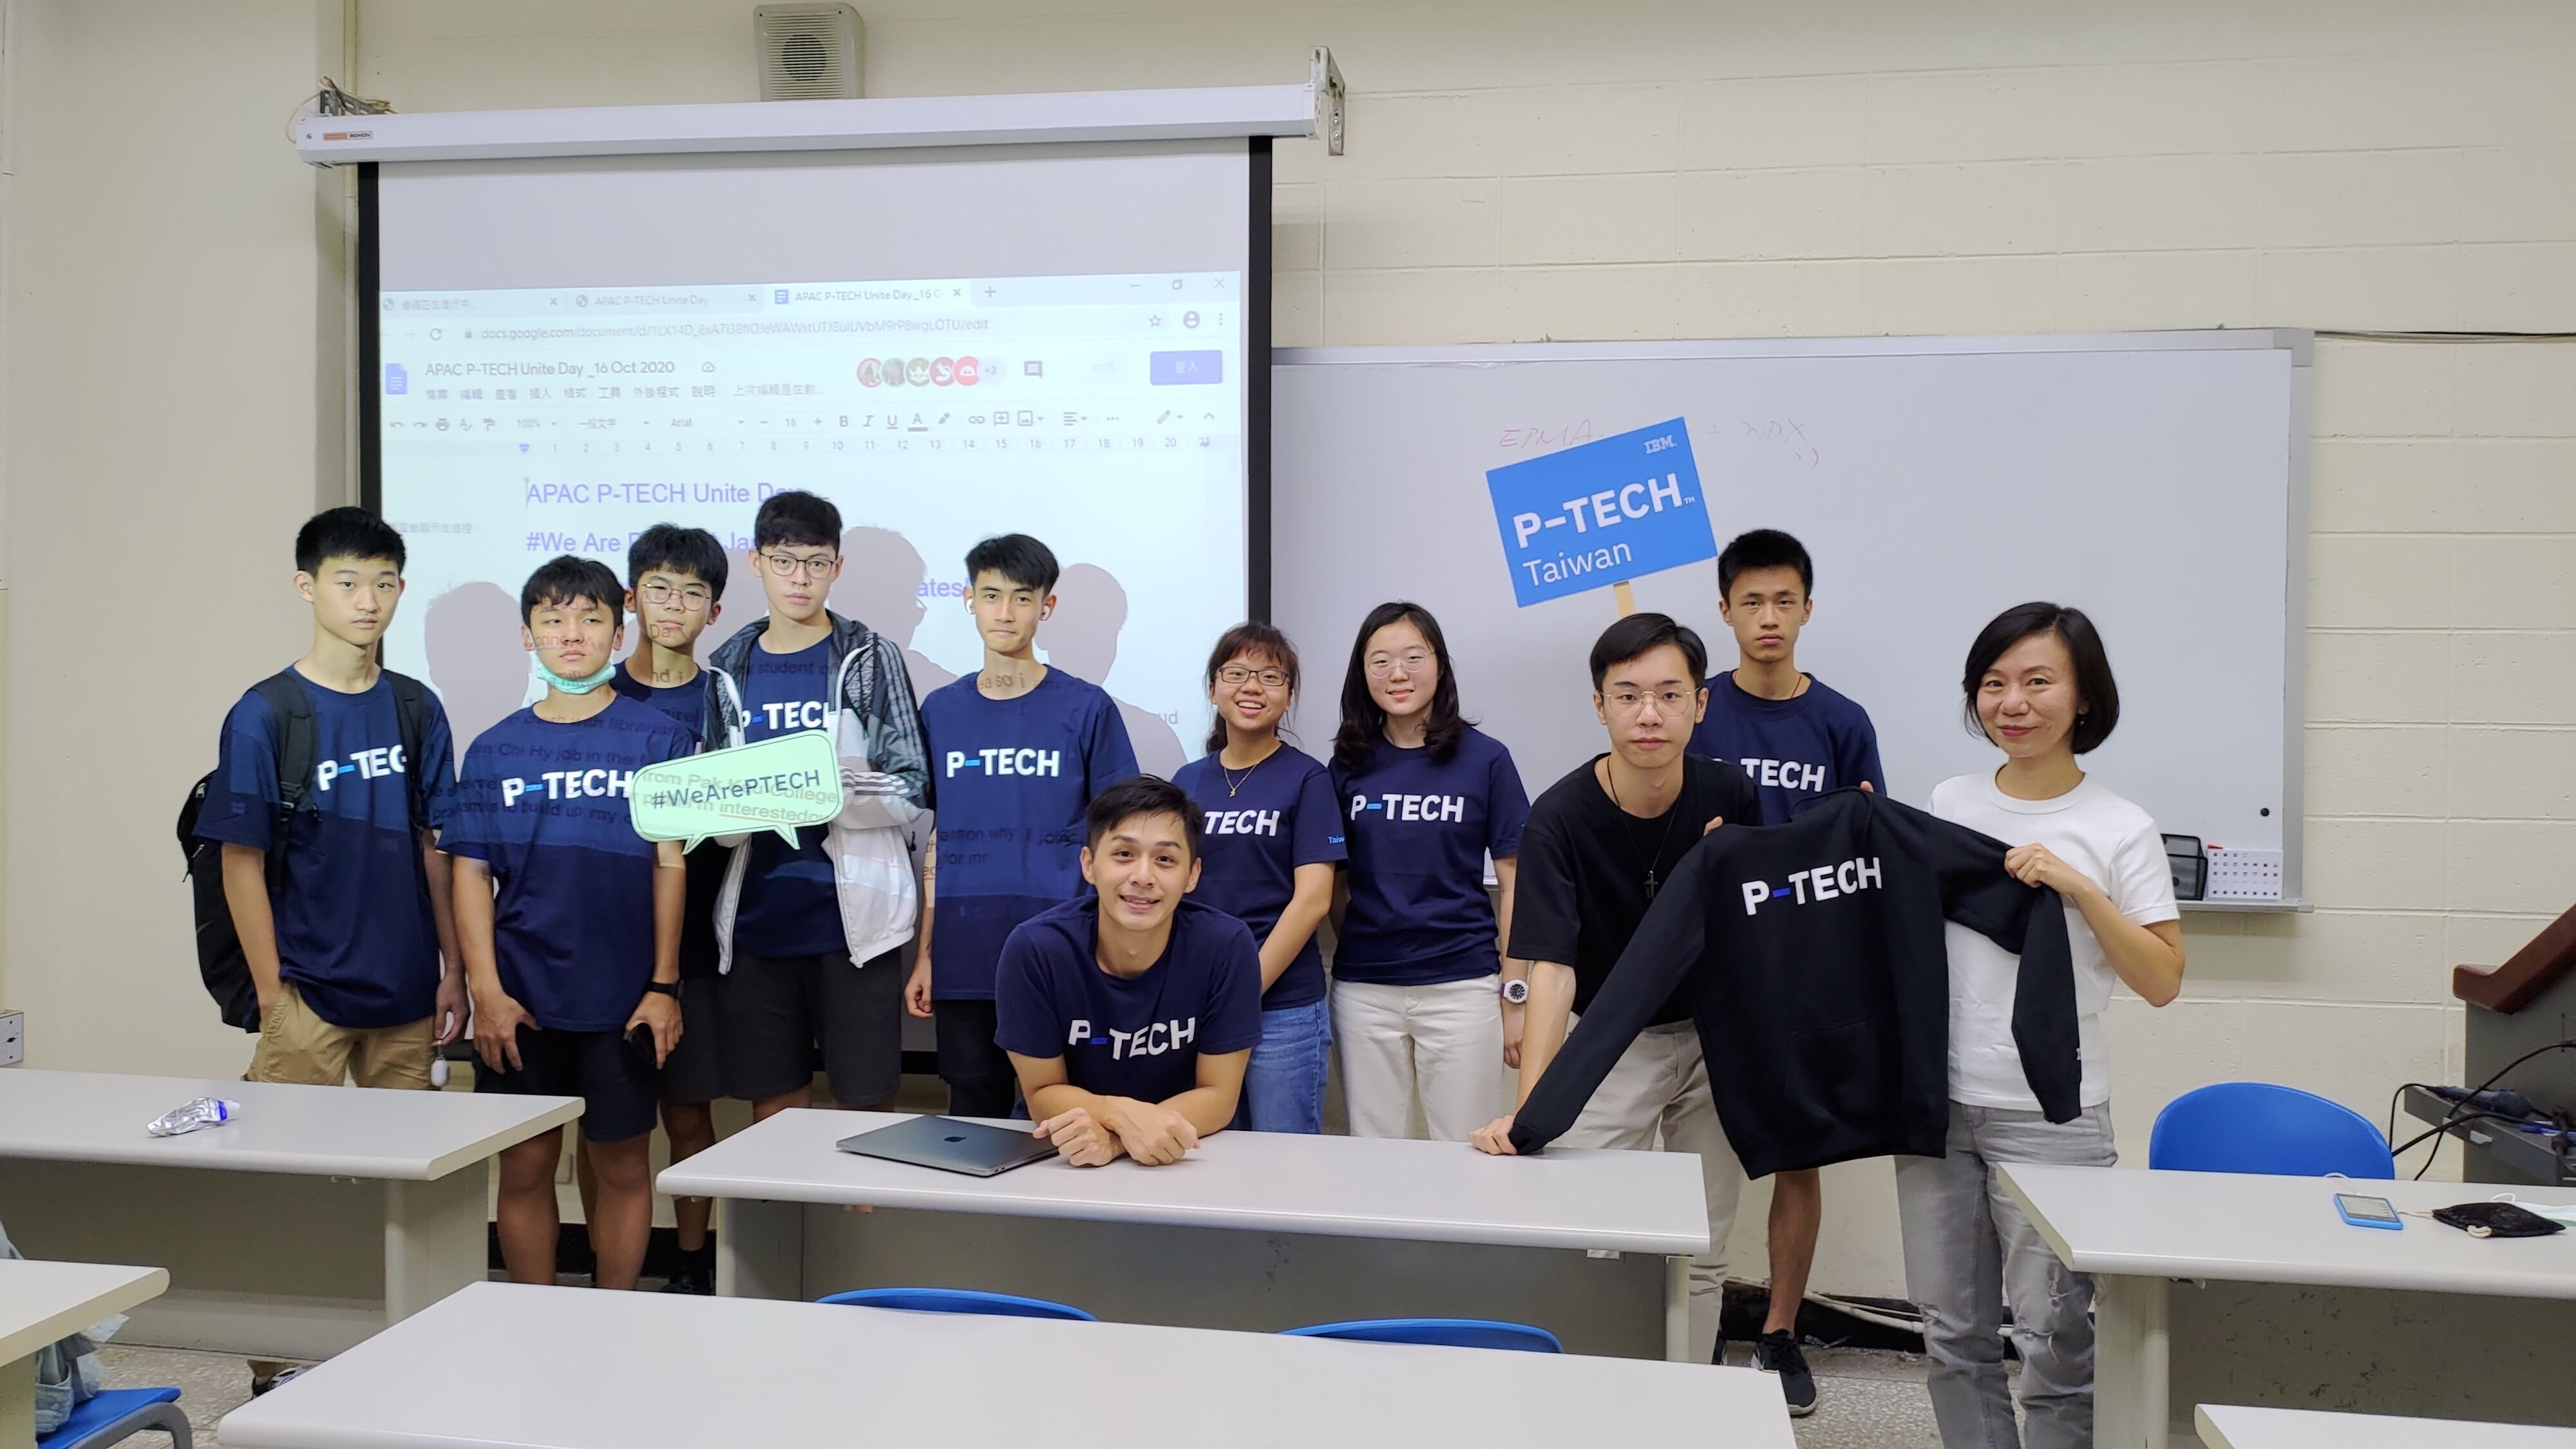 Classroom with 10 P-TECH students and one mentor posing for the picture.